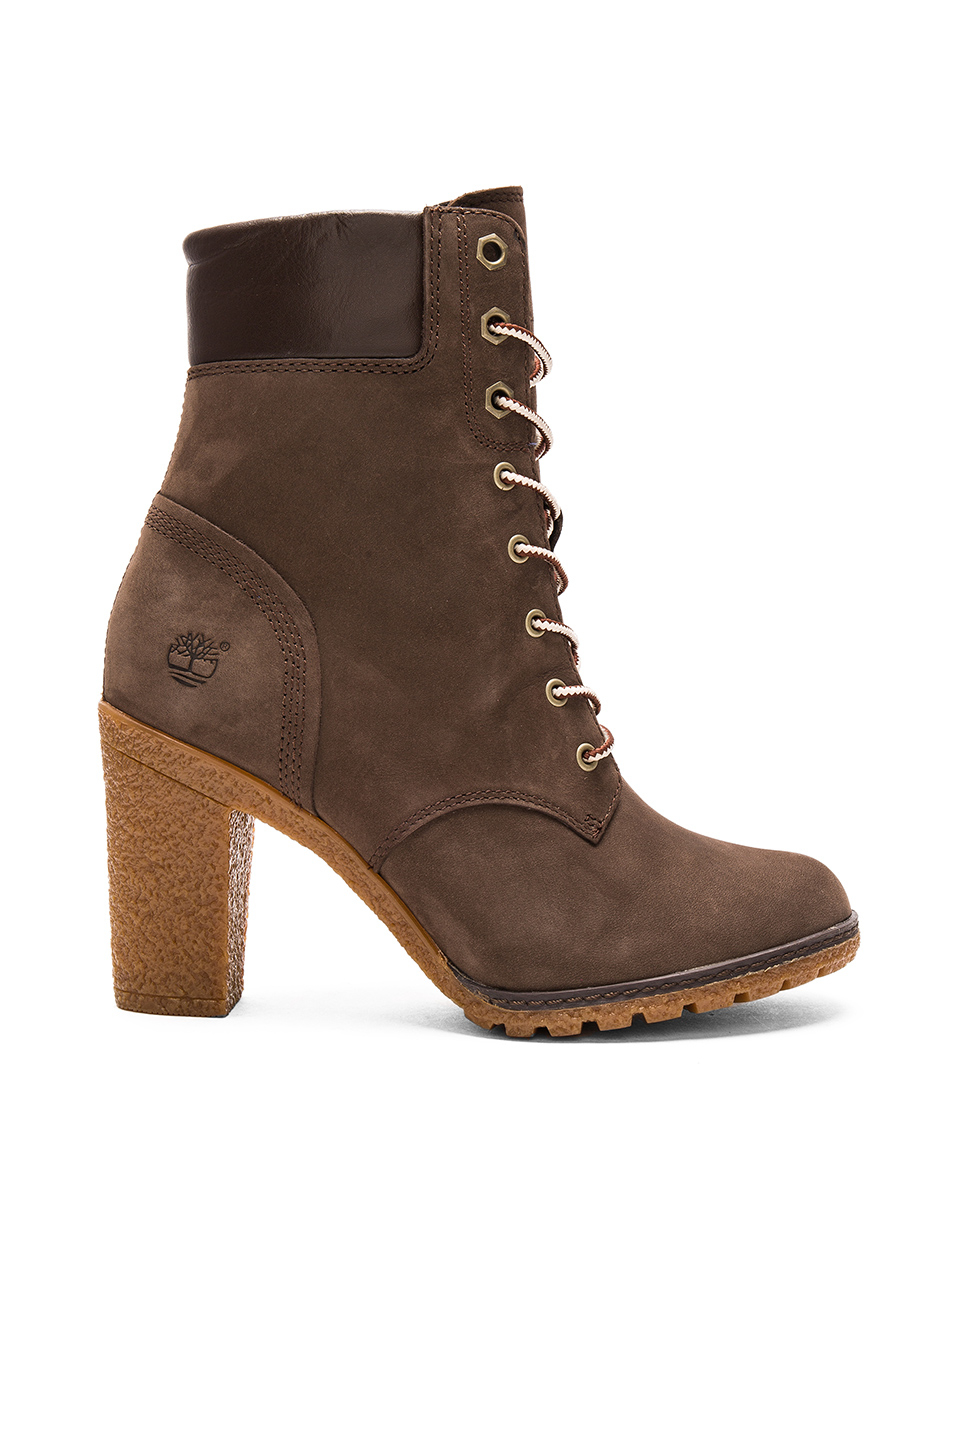 timberland glancy boot in brown lyst